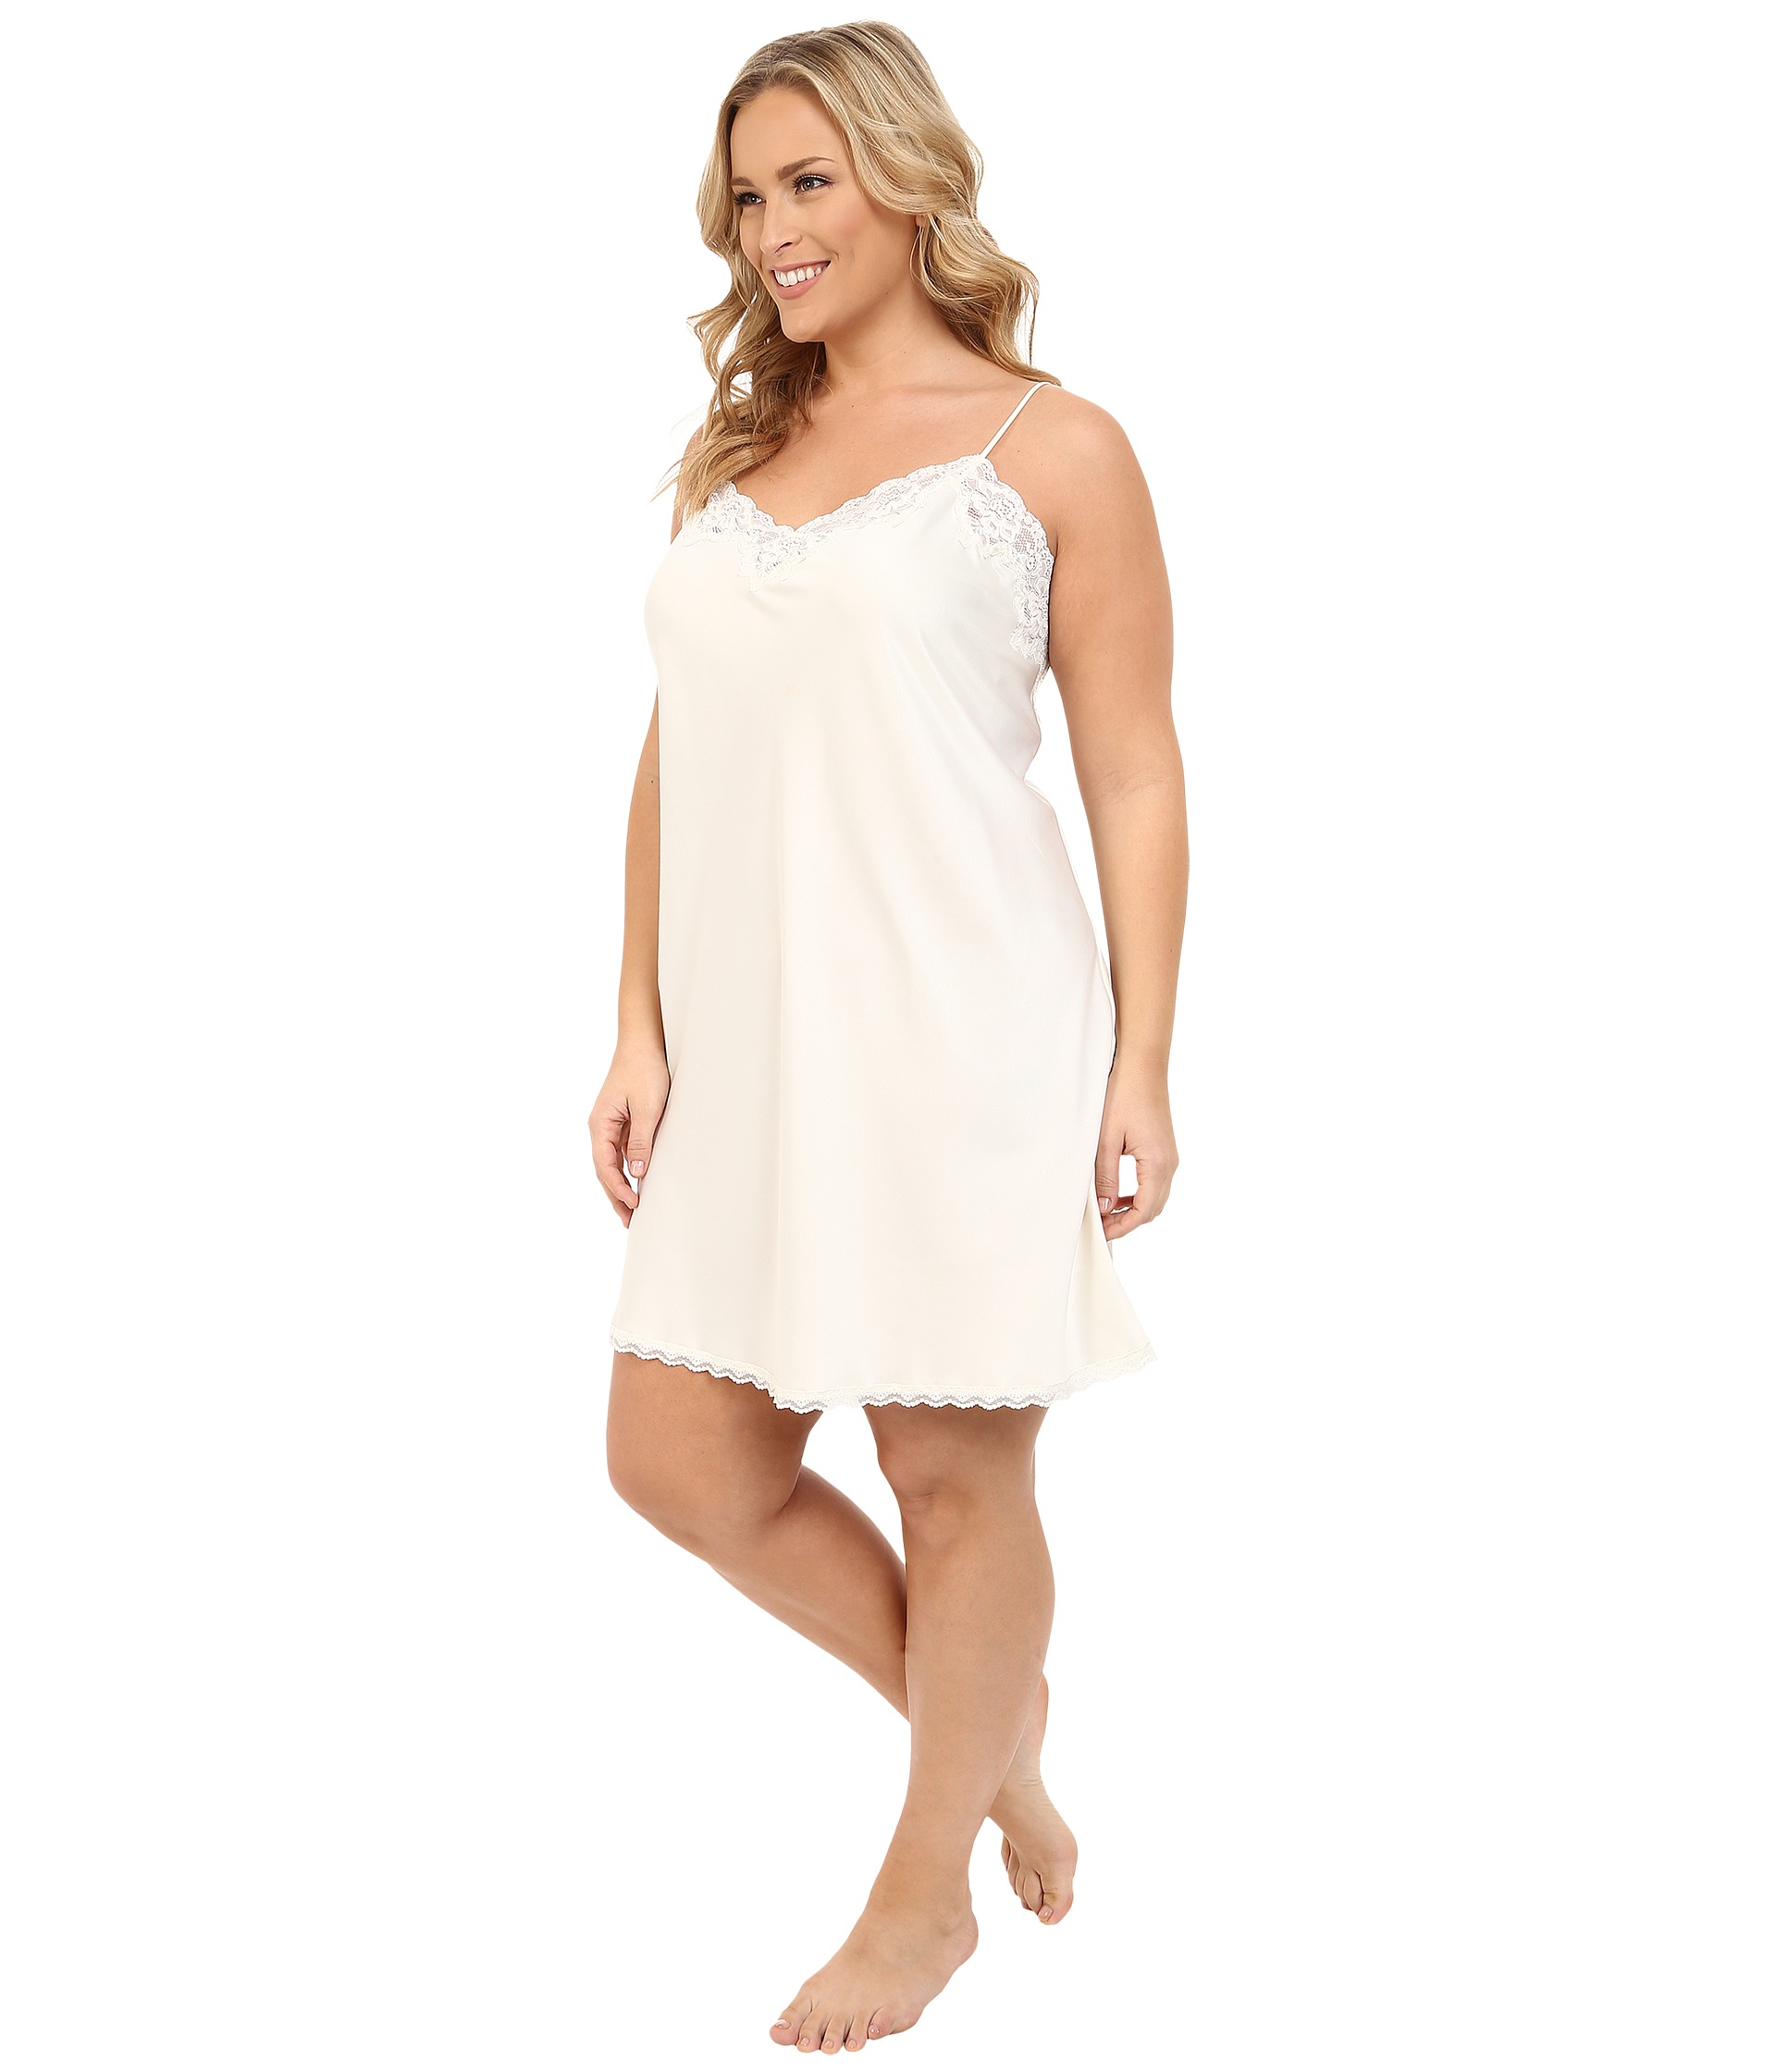 lauren ralph lauren plus size satin chemise ivory free shipping both ways. Black Bedroom Furniture Sets. Home Design Ideas